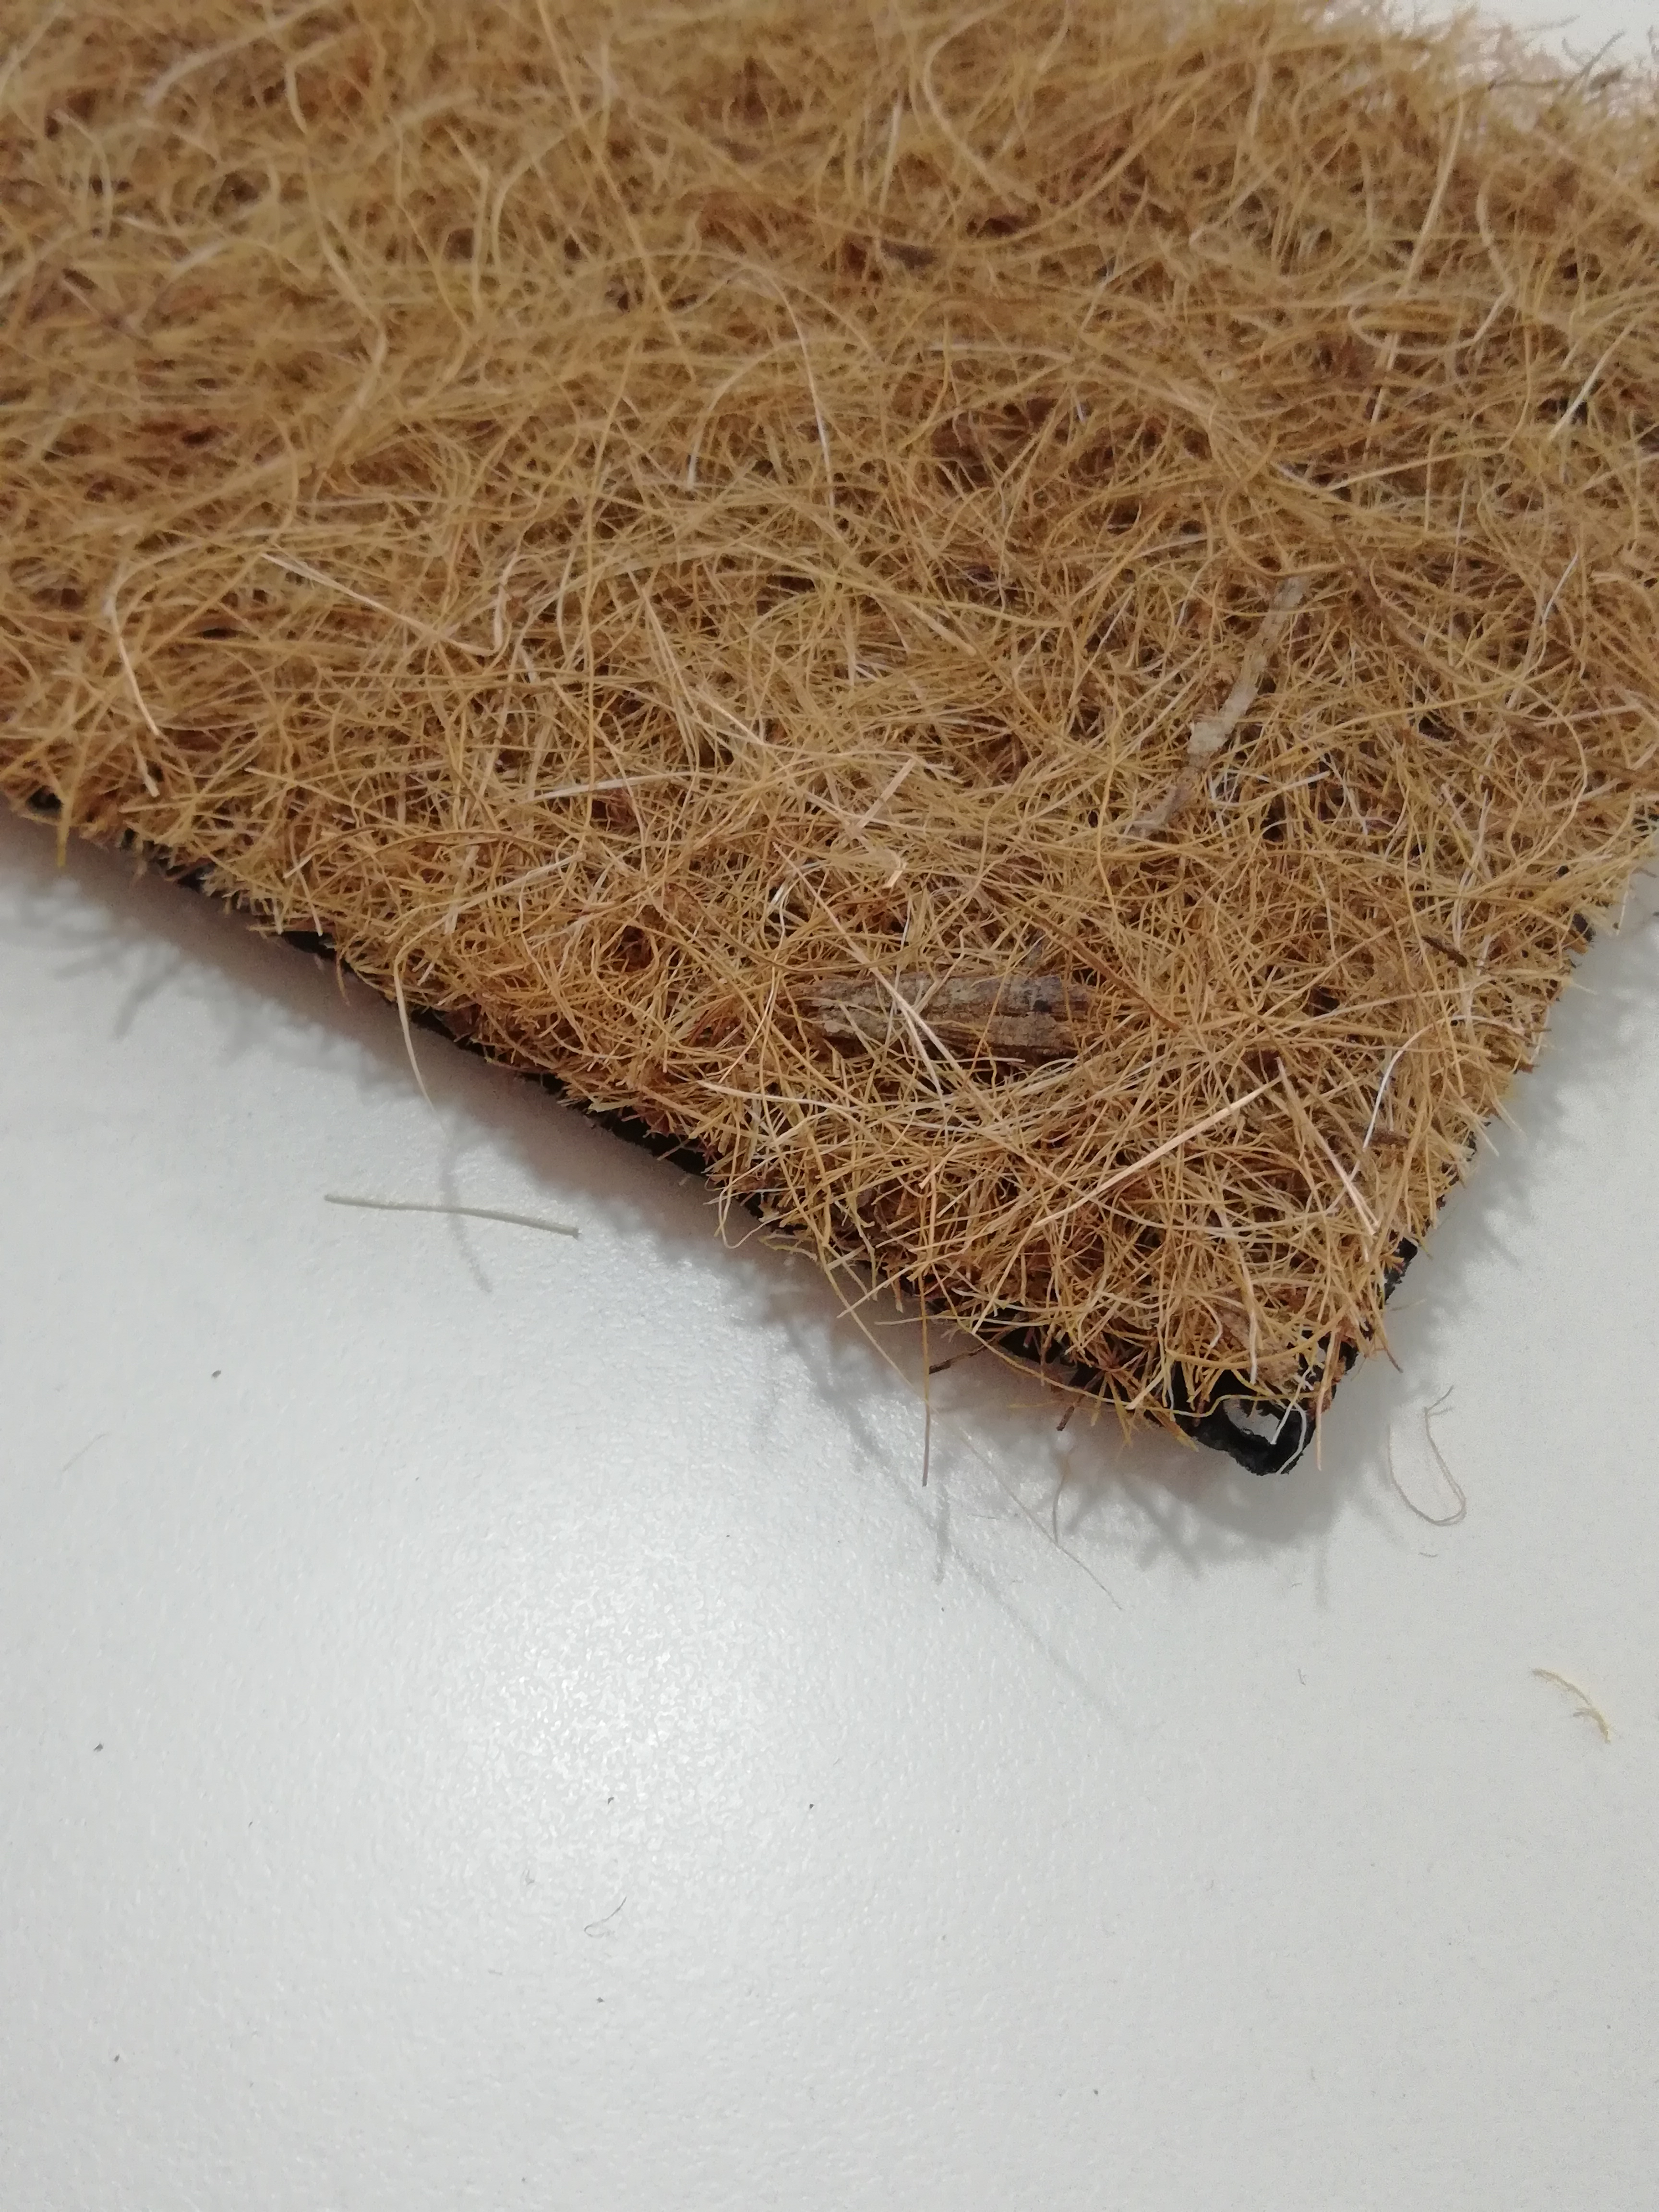 COCCOVIP 700 – BIODEGRADABLE MULCHING FELT ON PLA MADE OF COIR